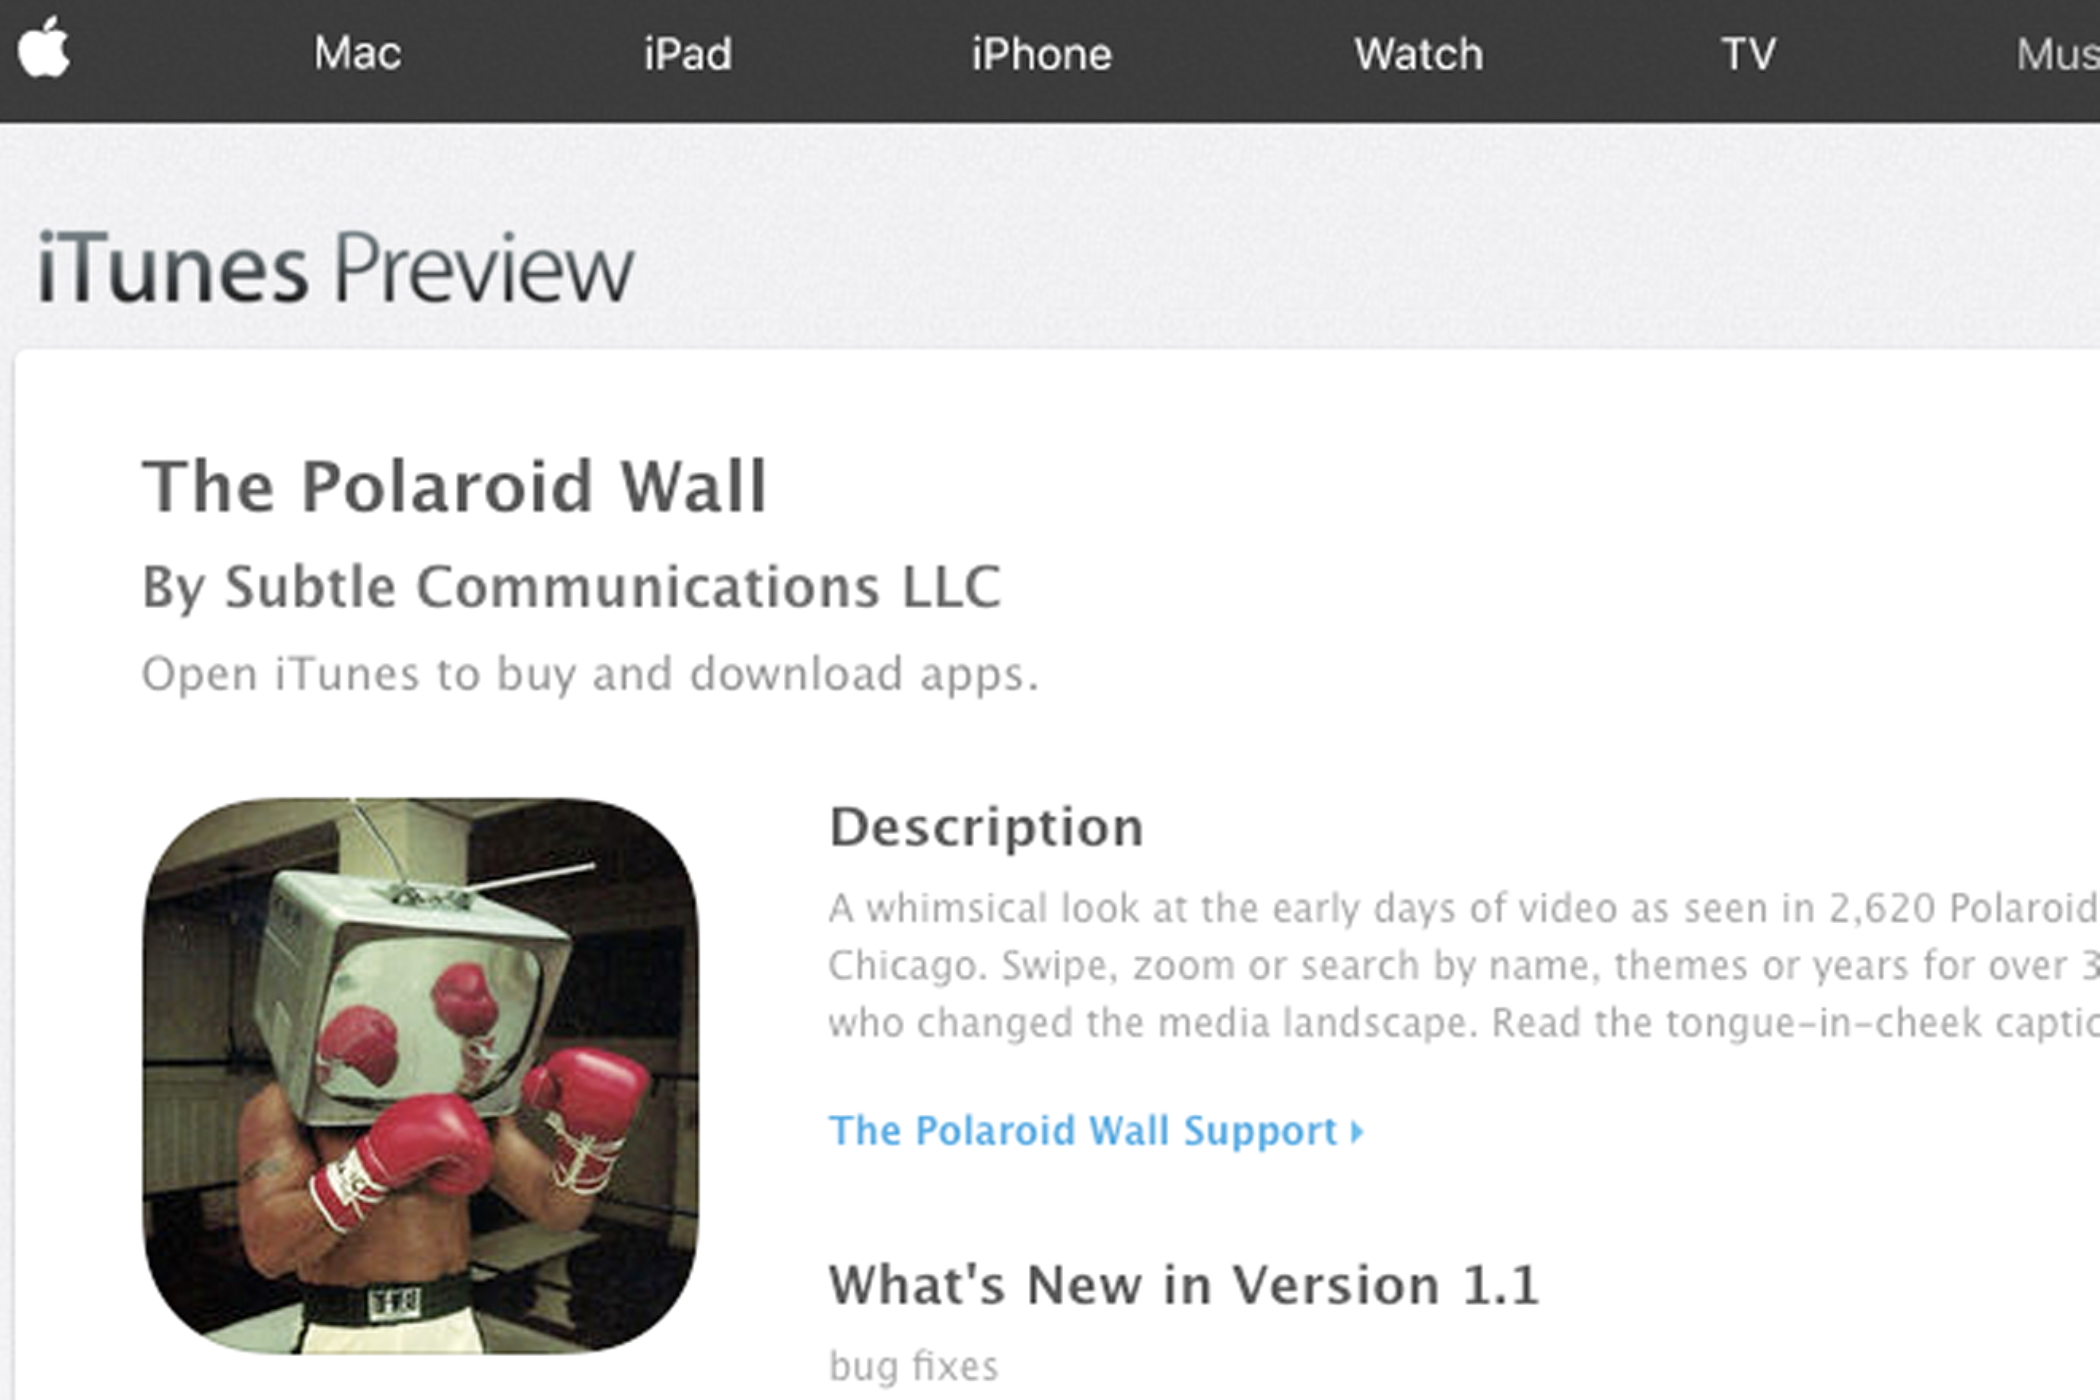 The Polaroid Wall is available on iTunes